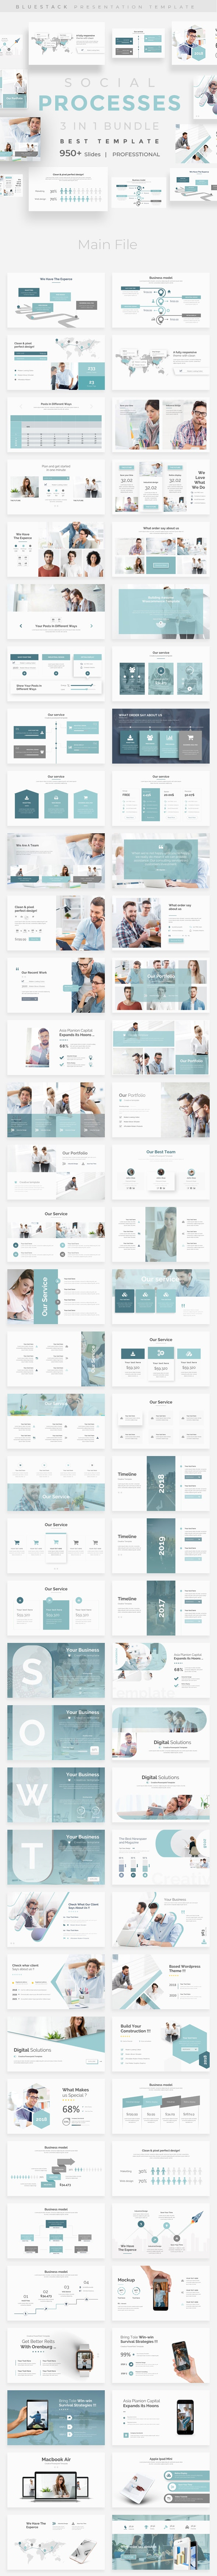 Social Processes 3 in 1 Pitch Deck Bundle Powerpoint Template - Business PowerPoint Templates